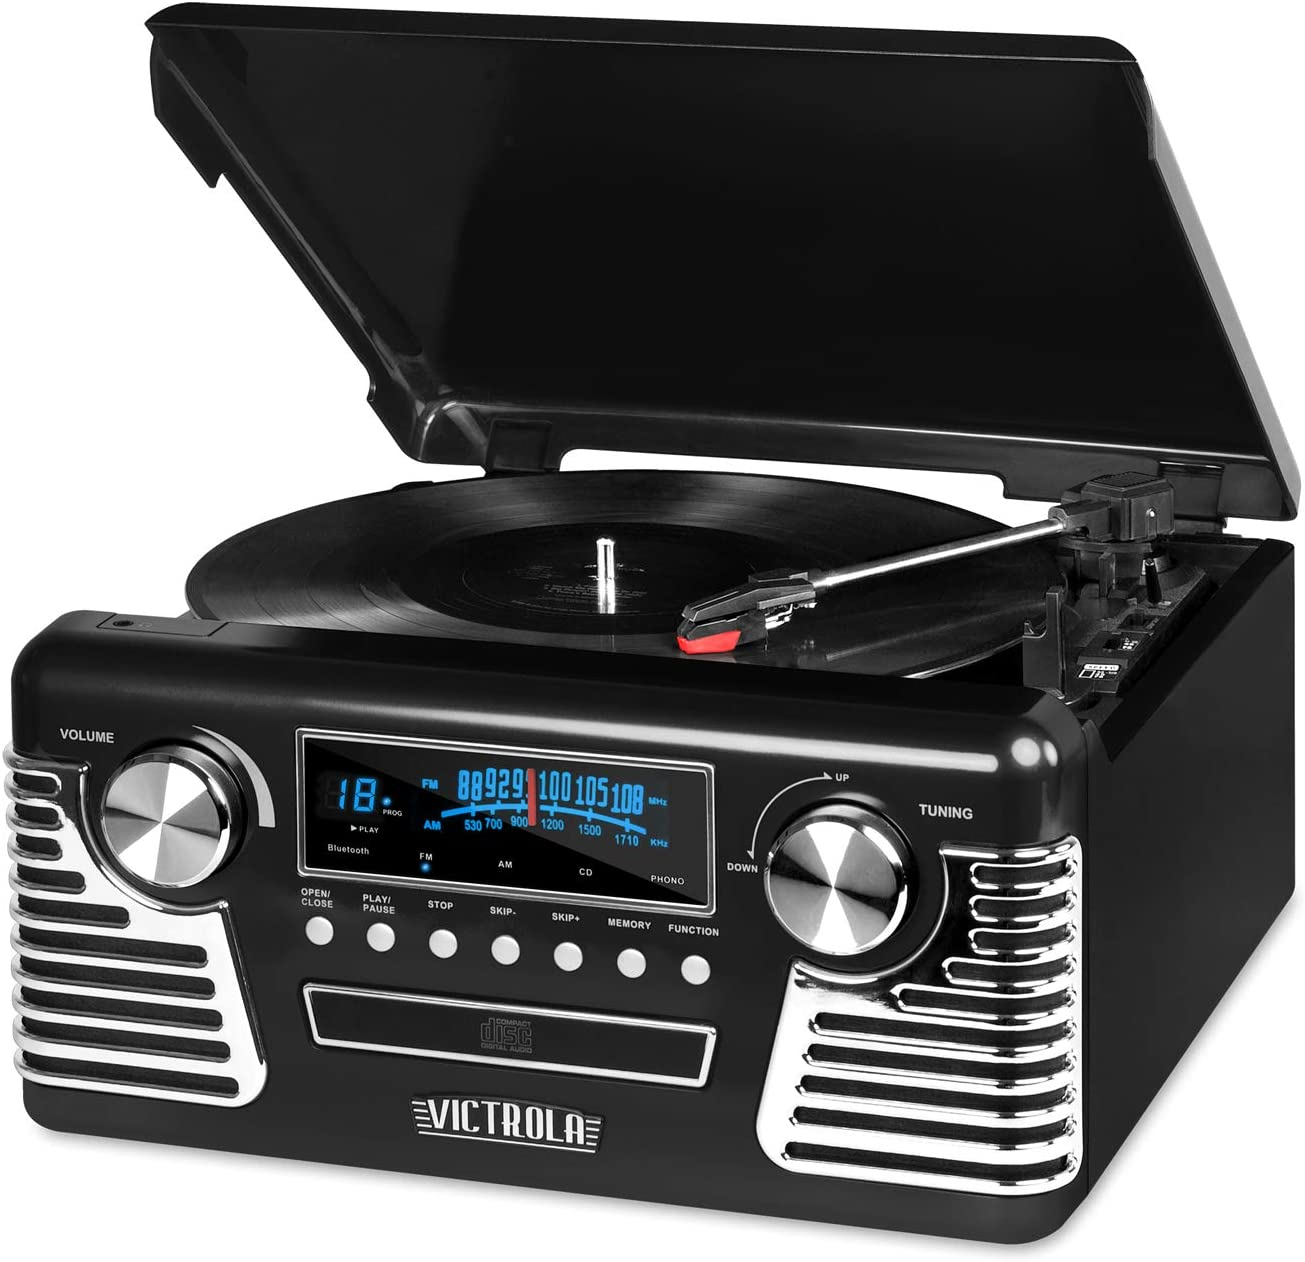 Victrola 50's Retro 3-Speed Bluetooth Turntable with Stereo, CD Player and Speakers, Black